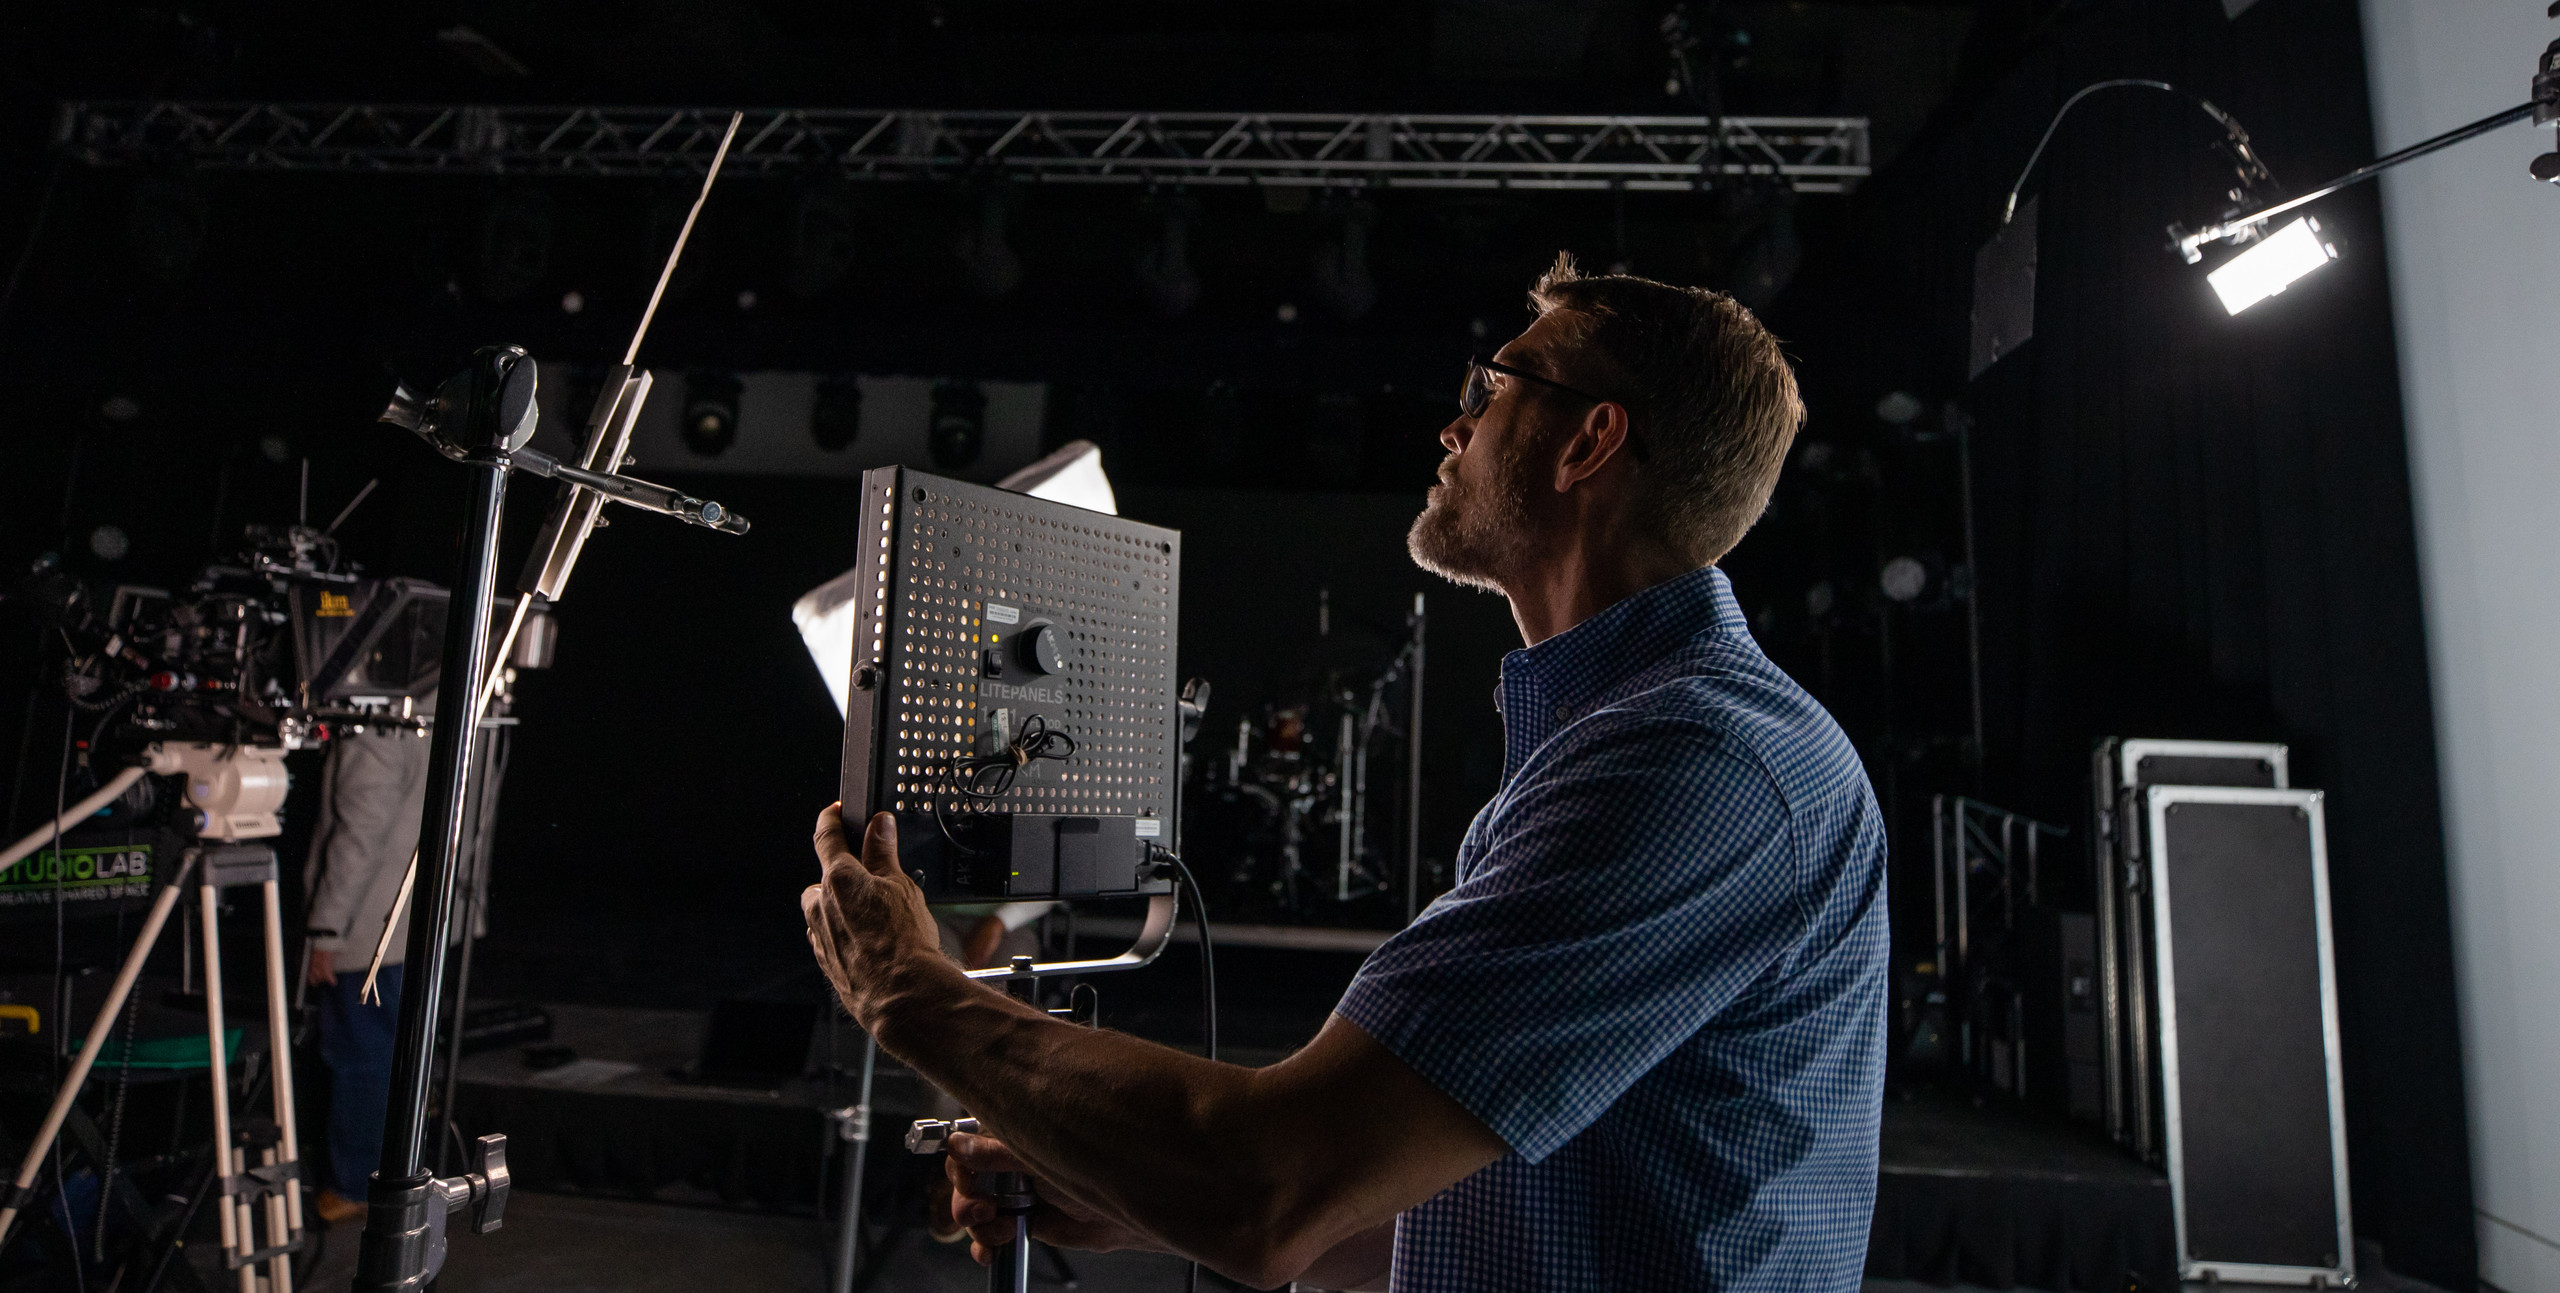 Kent Rich setting up lighting for video shoot in studio